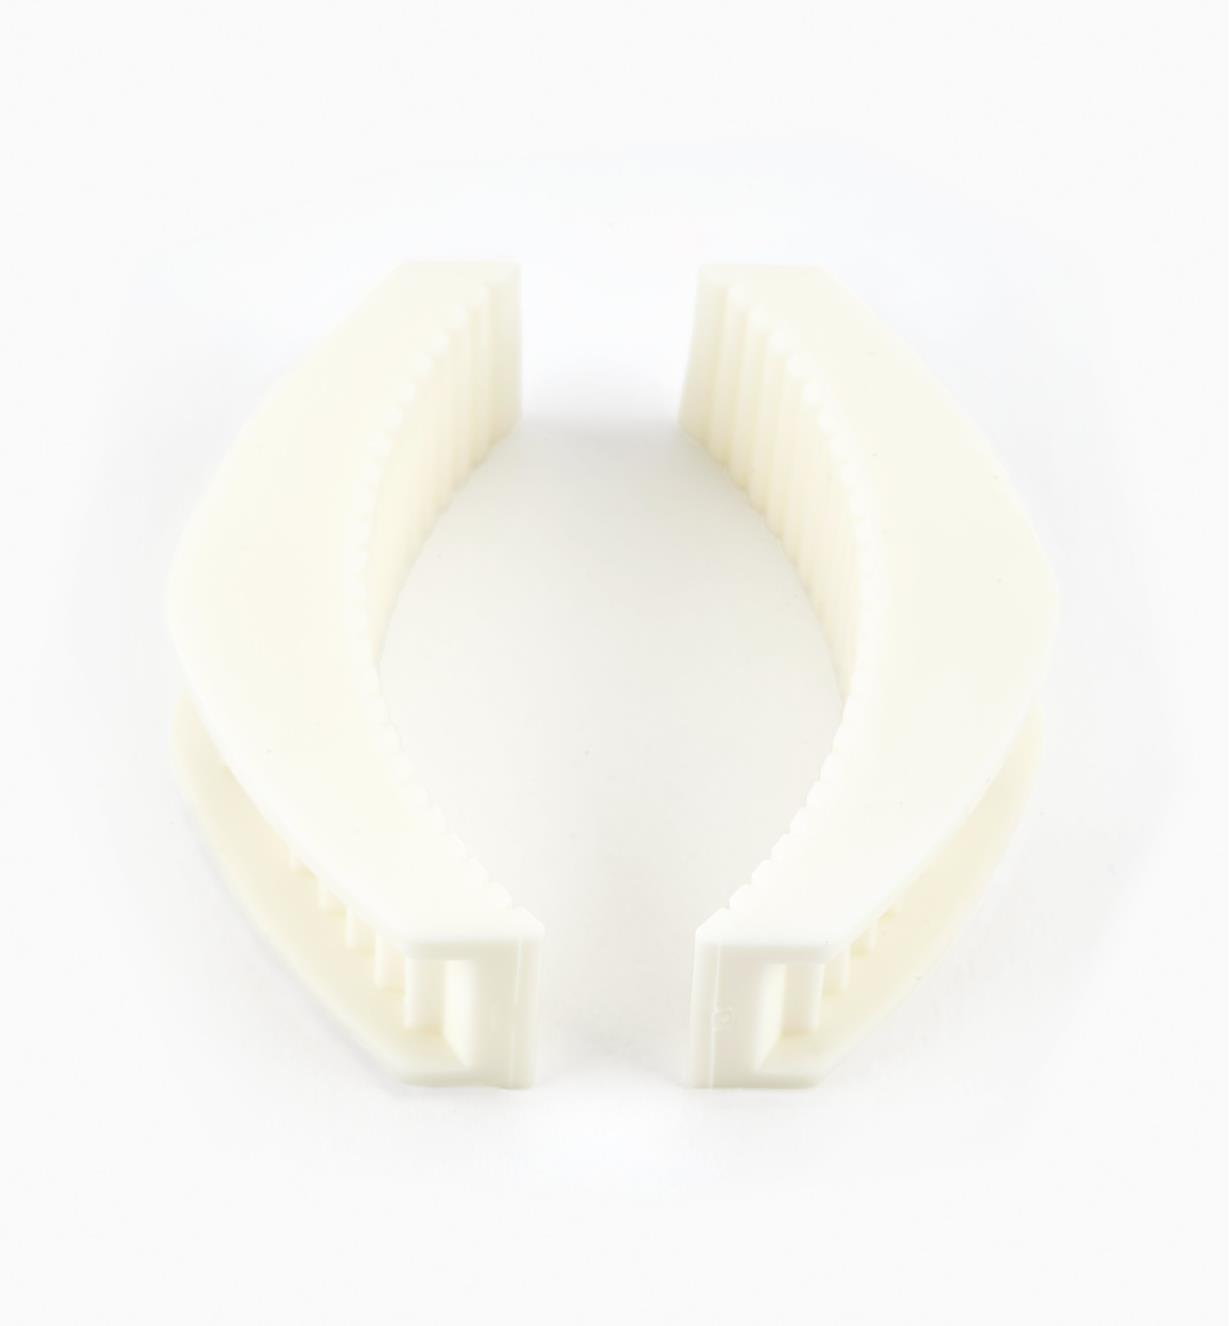 44K0611 - Replacement Round Jaws, Lg.